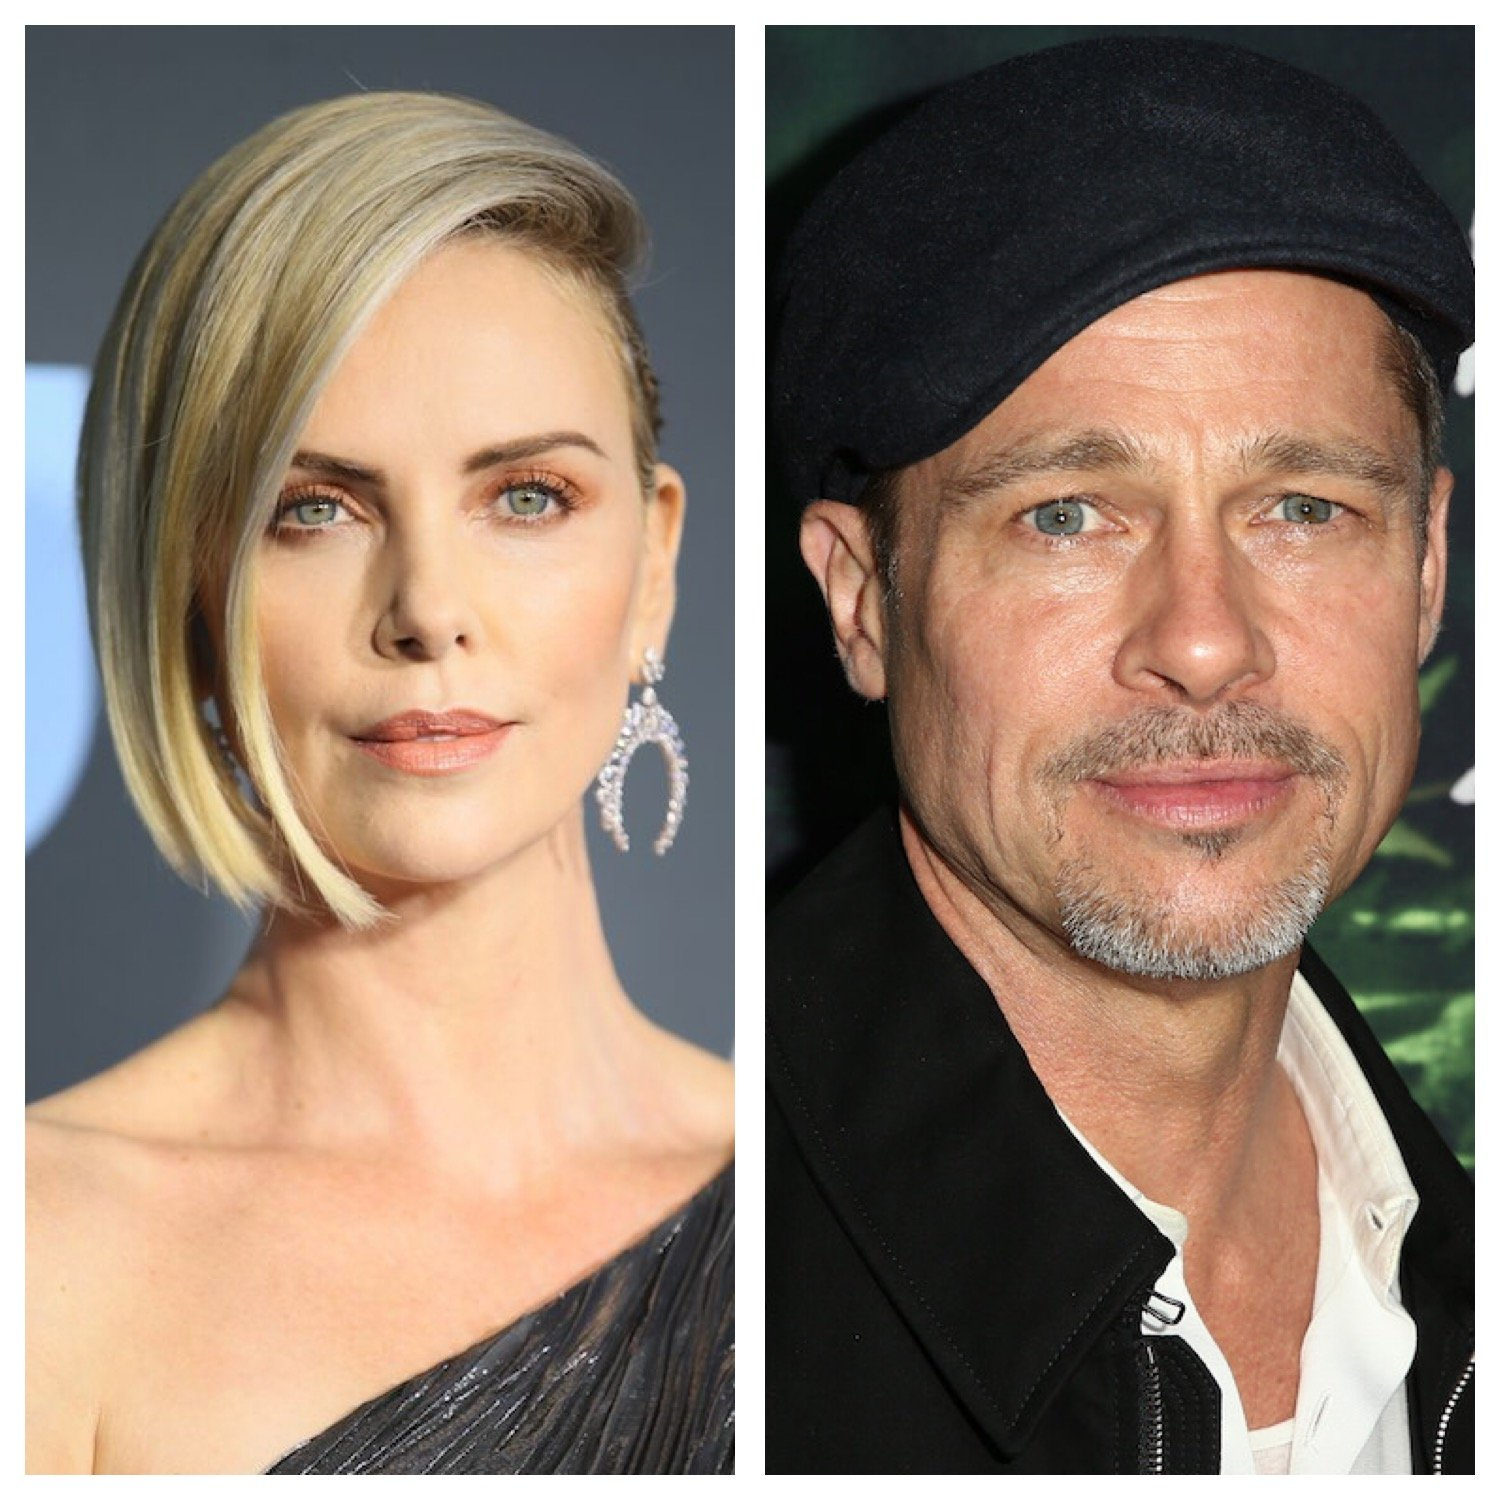 Brad Pitt and Charlize Theron are Hollywood's latest hot couple